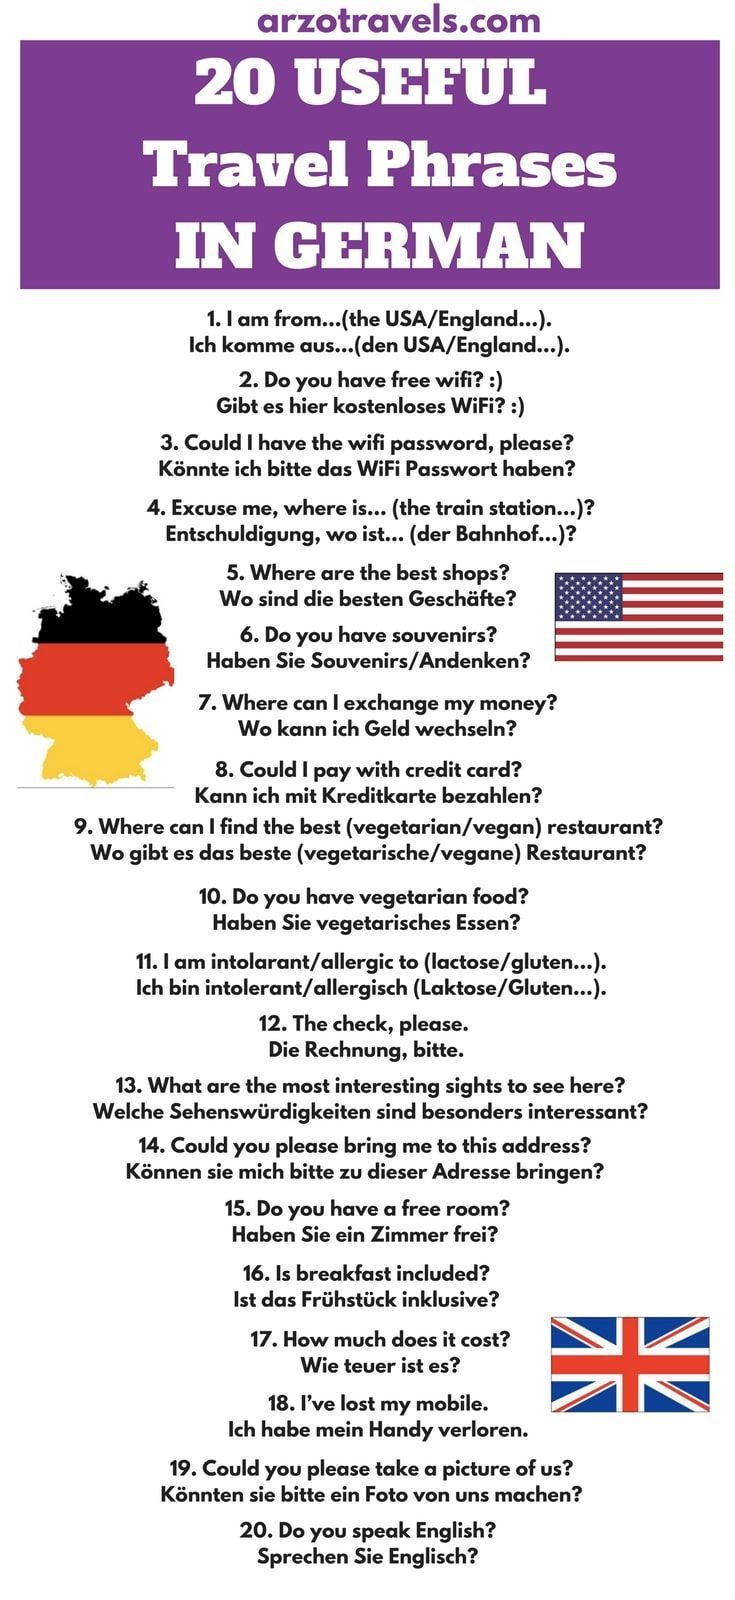 20 Most Useful Travel Phrases In German Germany Travel Pinterest